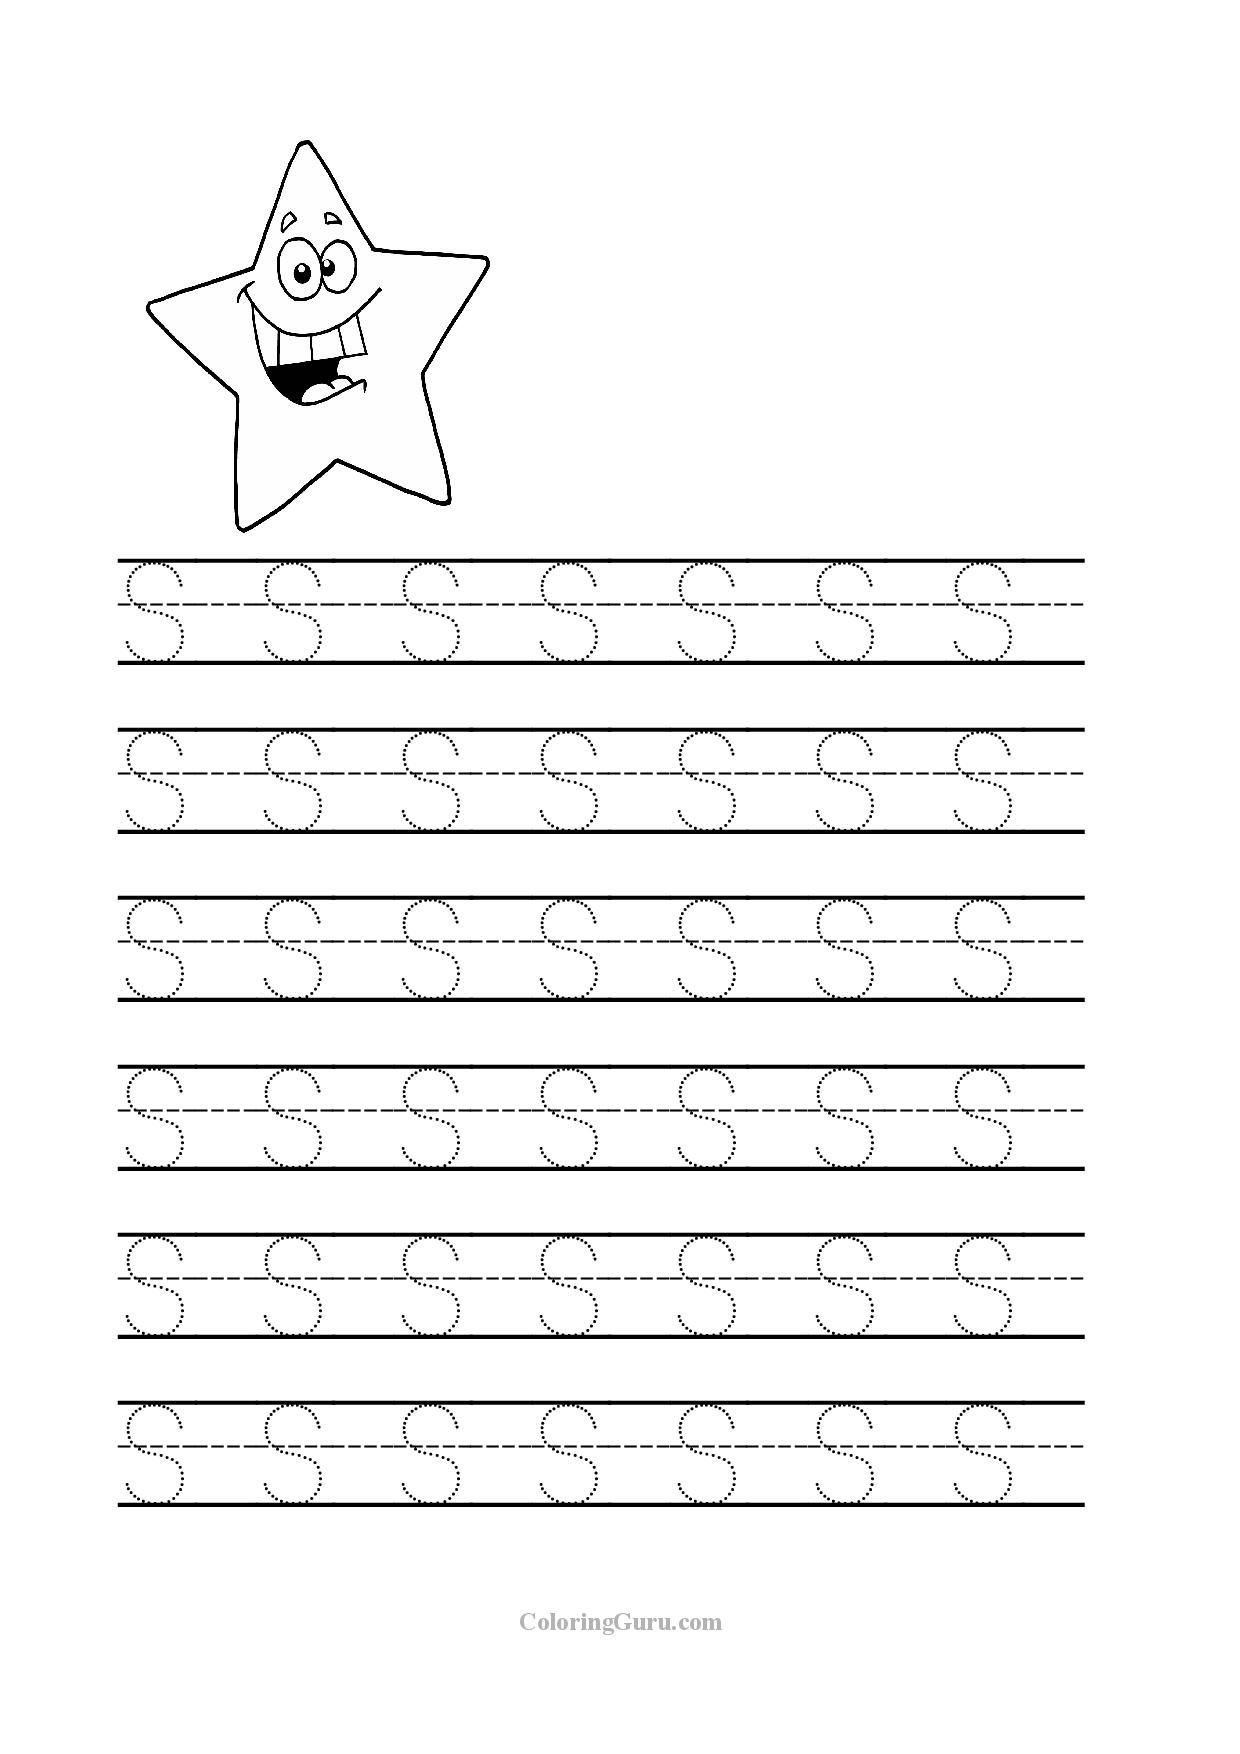 worksheet Letter S Worksheets For Preschool free printable tracing letter s worksheets for preschool printables pinterest and letters